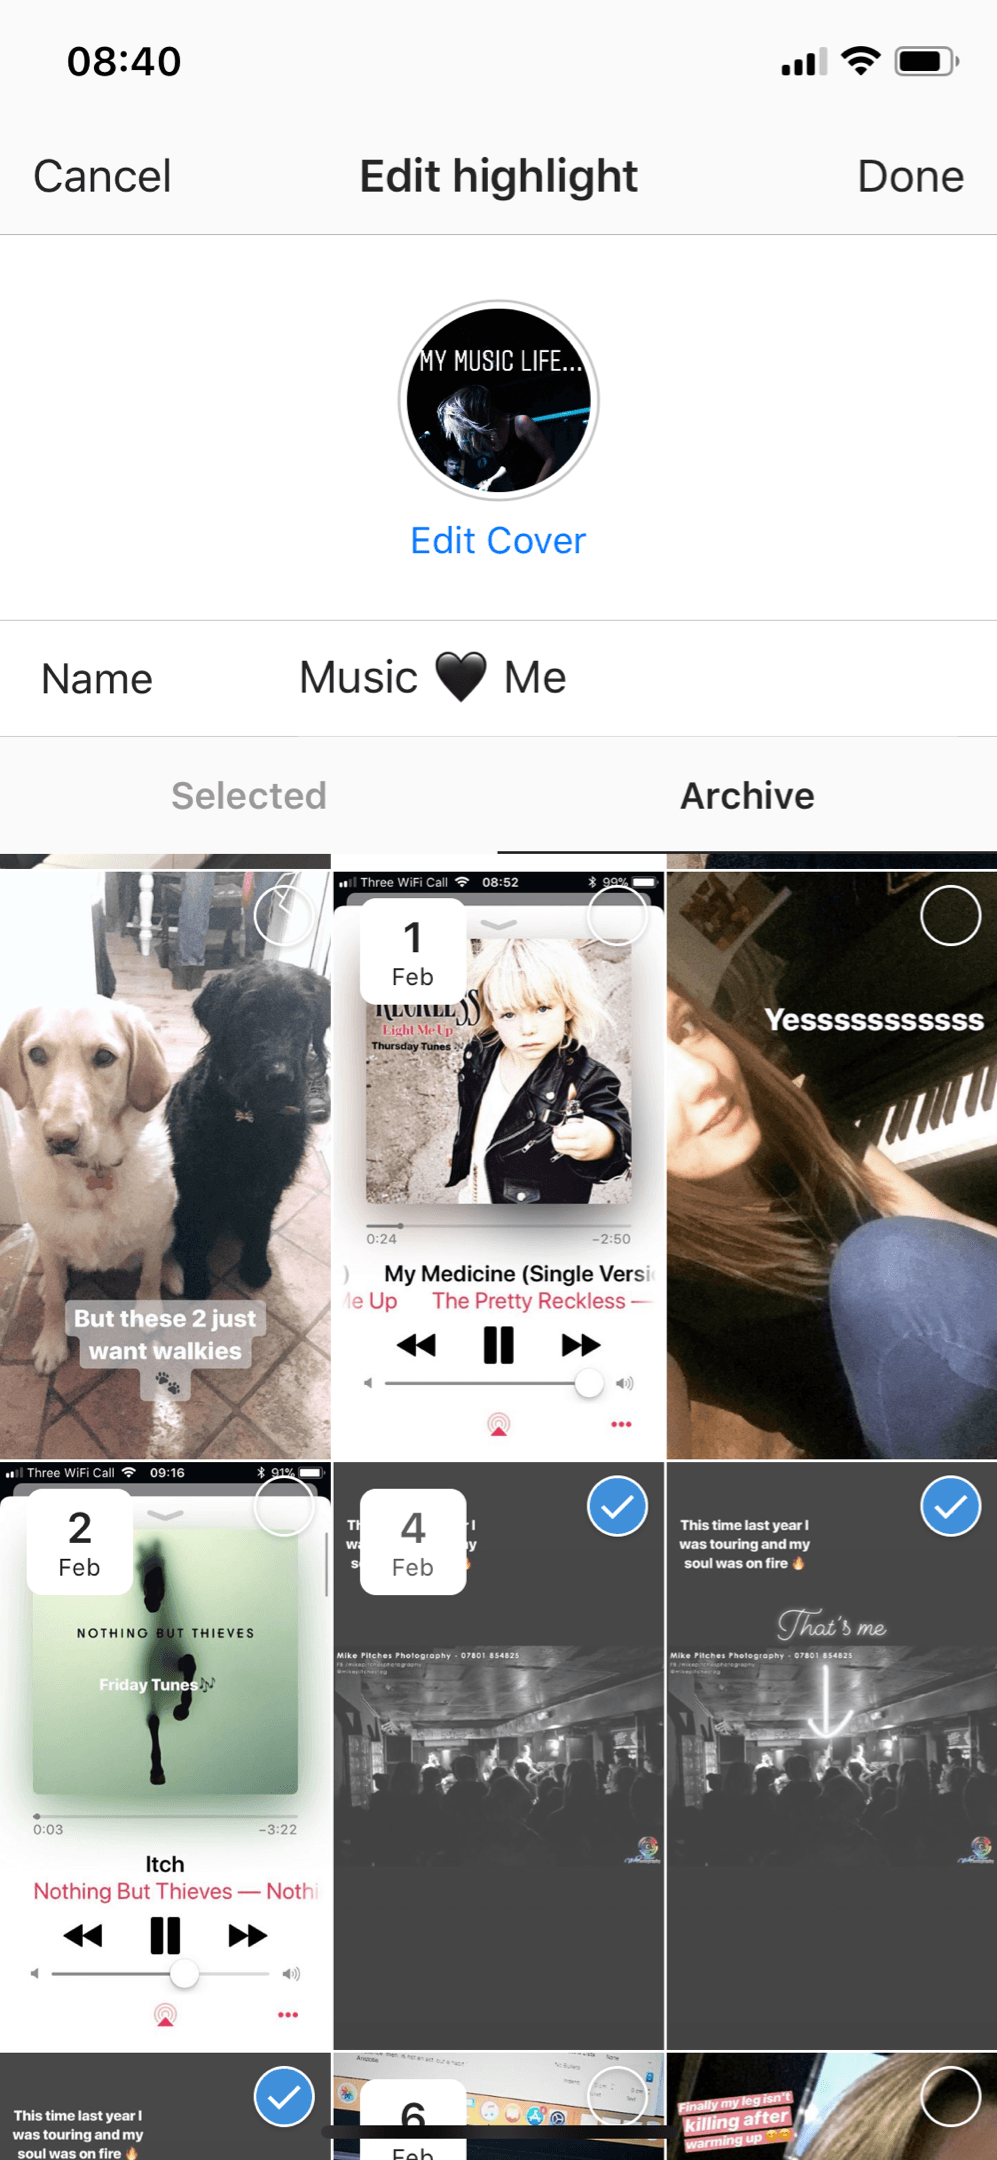 Add images you want to include in your Instagram stories highlight